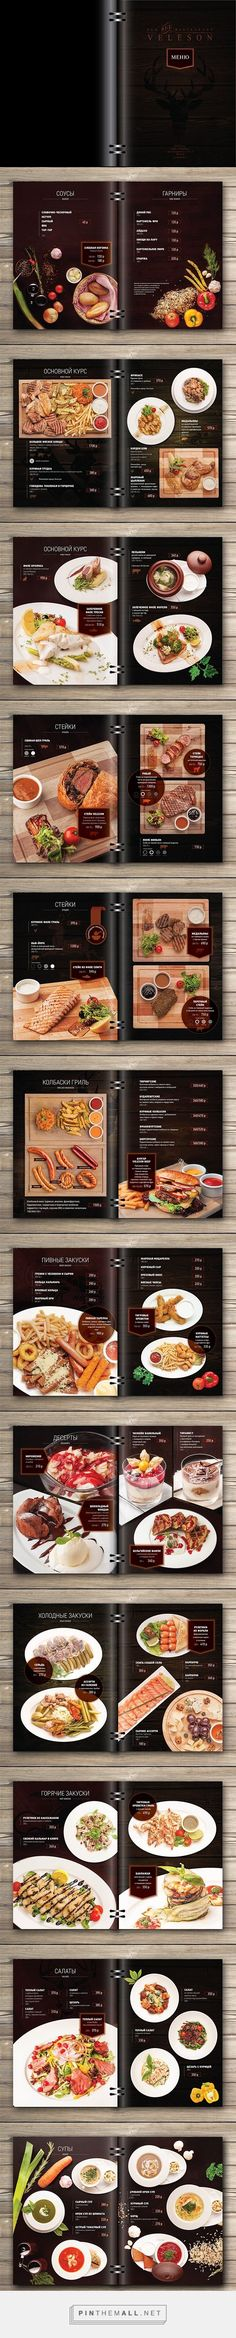 Make the food stand out with restaurant menu designs - Fiverr Outsource - Outsource your work on Fiverr and save your time. - Make the food stand out with restaurant menu designs Food Menu Design, Cafe Design, Layout Design, Print Design, Layout Print, Menu Layout, Menu Restaurant, Restaurant Design, Menu Café